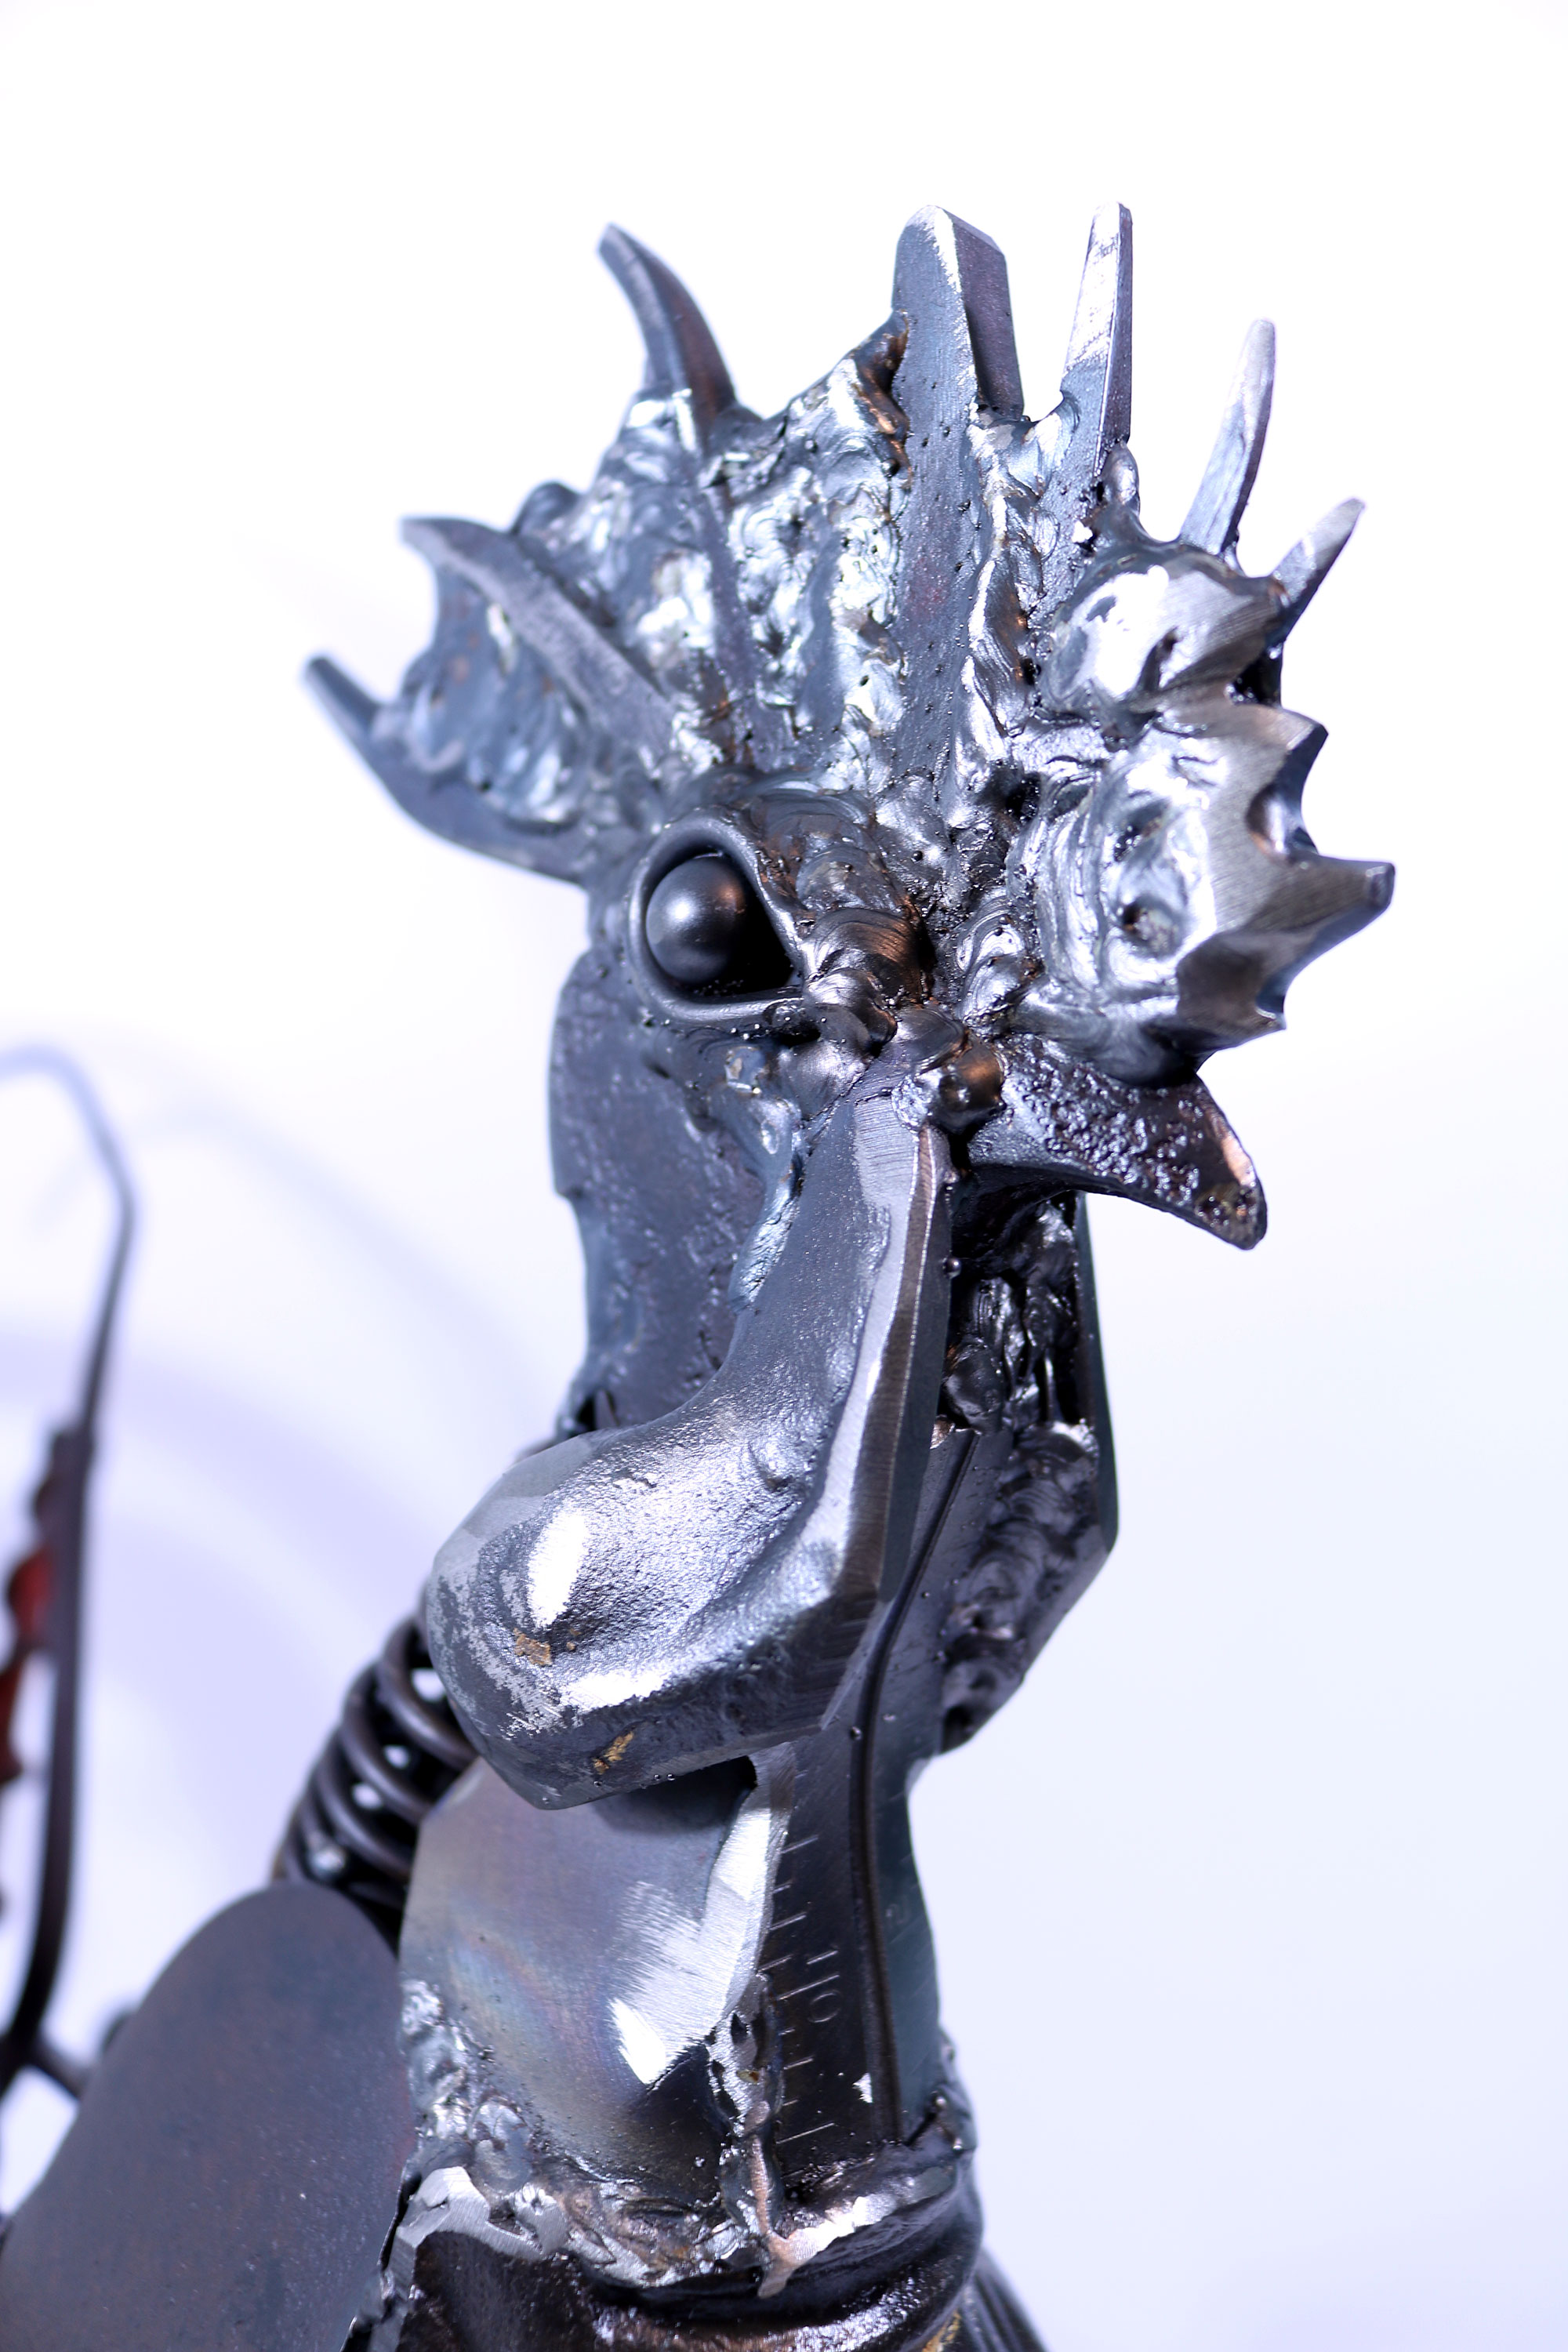 How to Weld a Rooster - Metal Art Welding Project LIVE with Michael Vivona